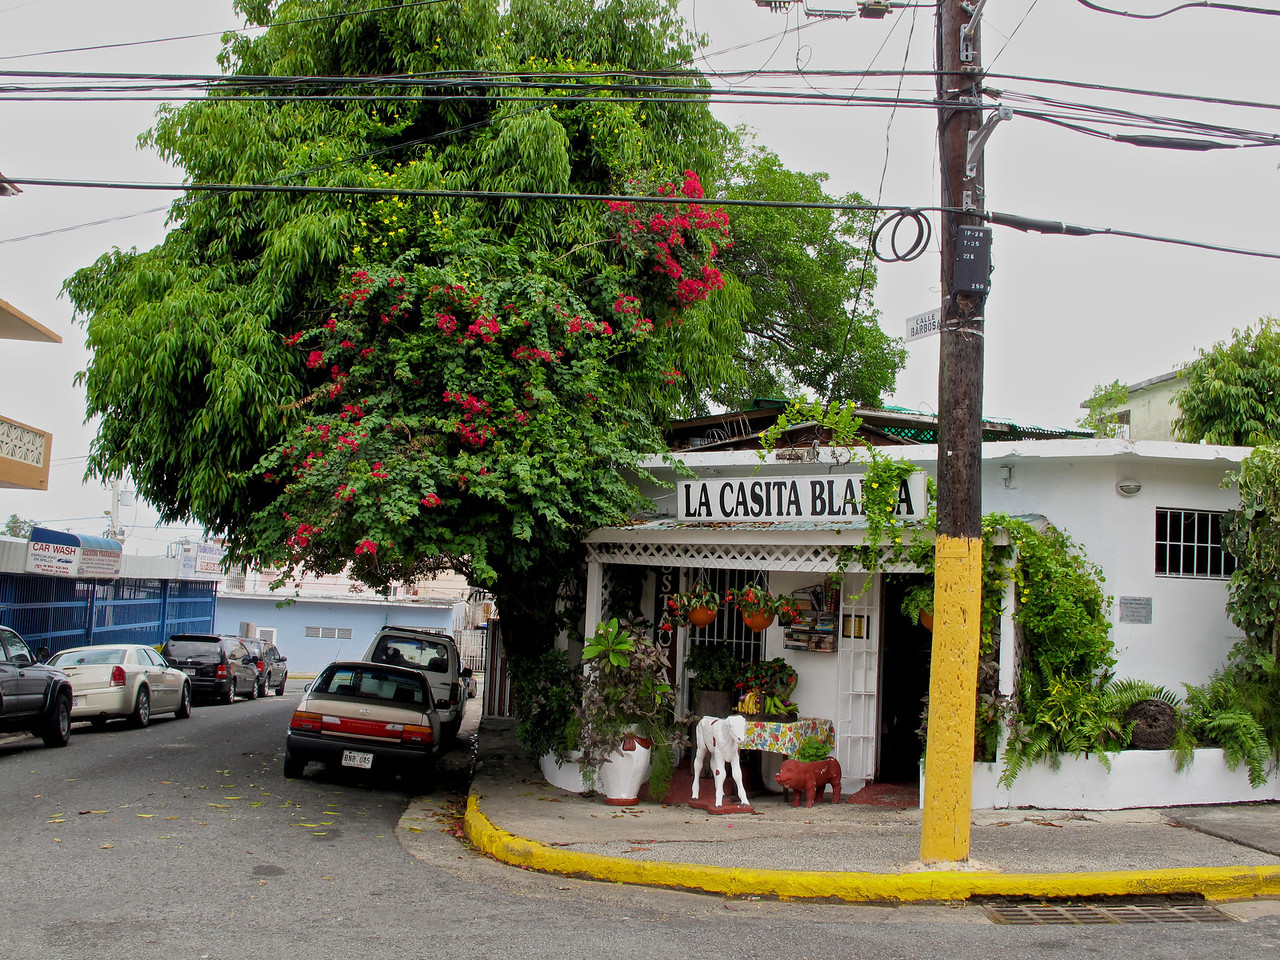 La Casita Blanca is a great place to sample true, home cooked Puerto Rican food.  It's off the beaten path, so a taxi ride is the easiest way to find it.